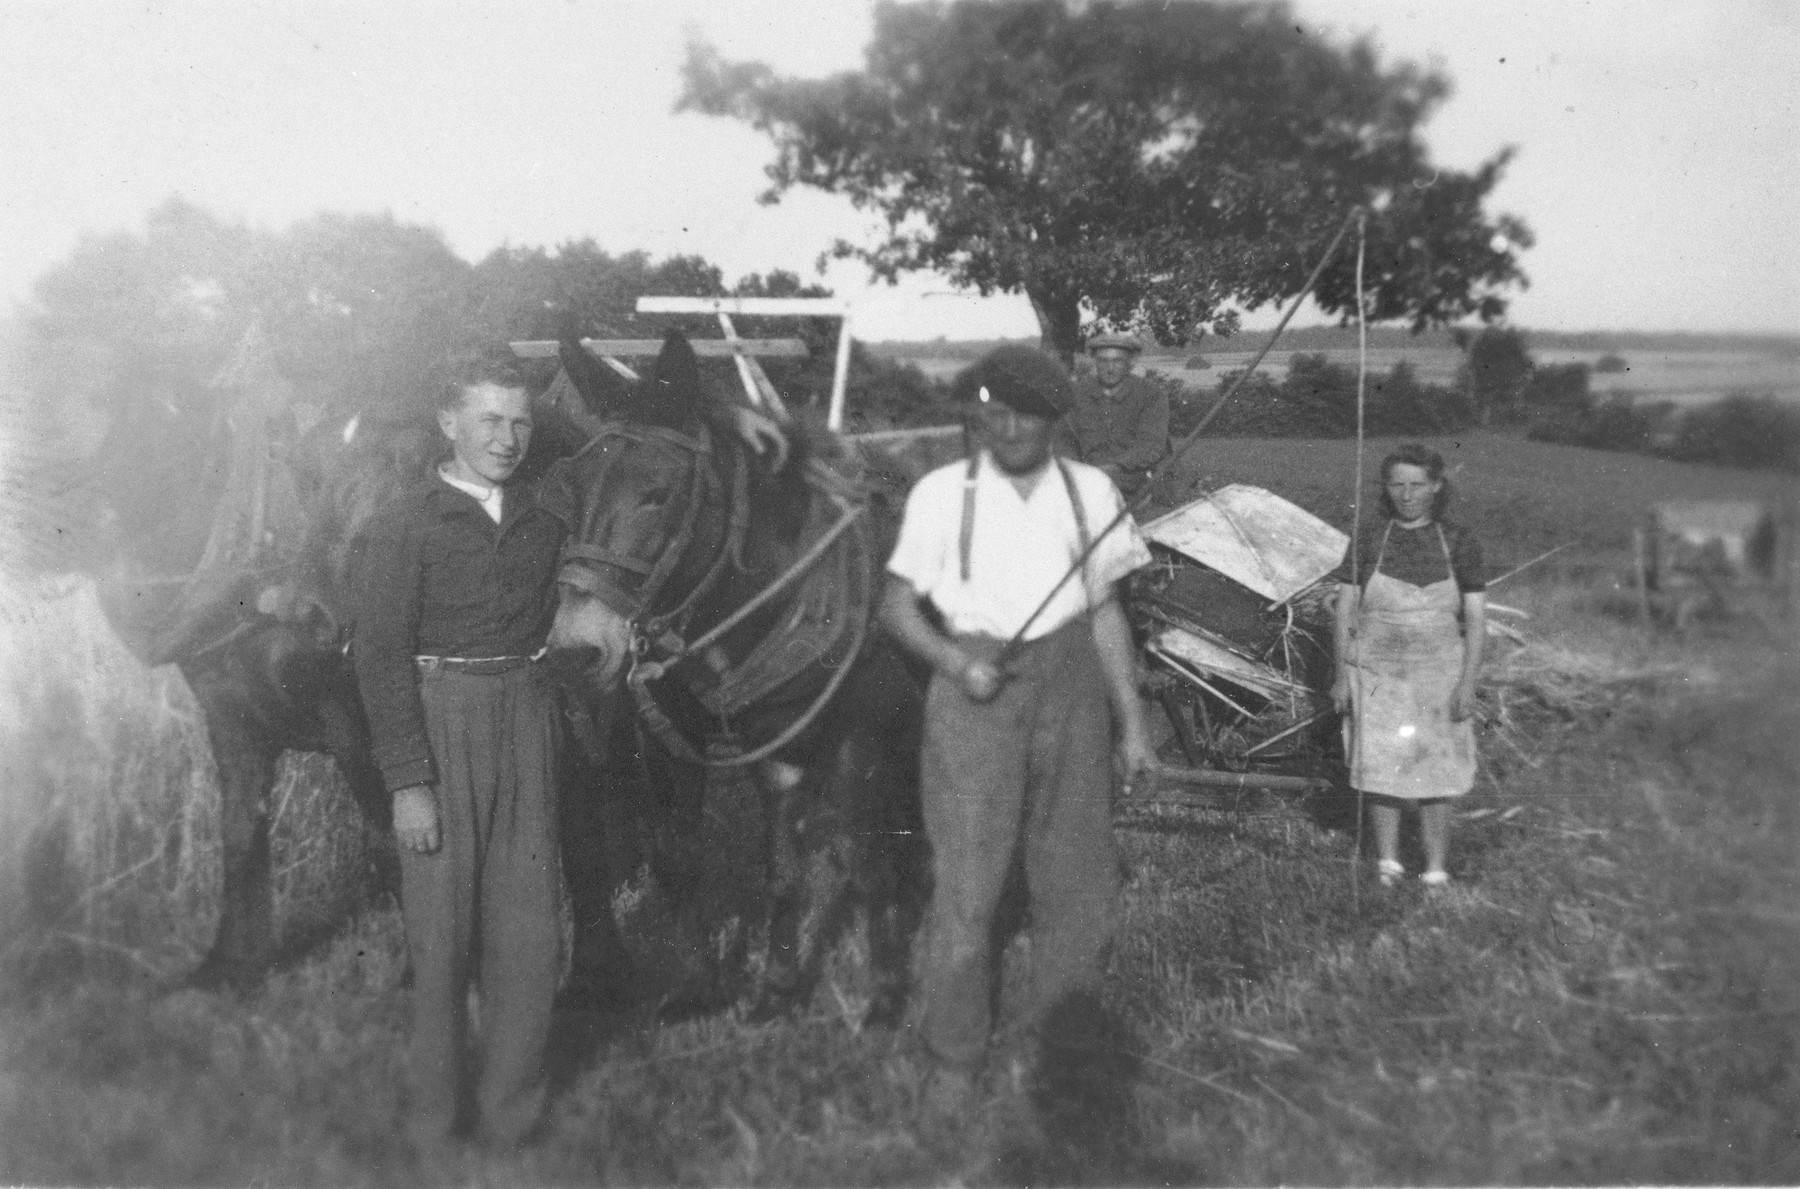 Bernard Ginsburg (left), a Jewish teenager in hiding, assists Adrian and Marie Puyrajoux on their farm in France.